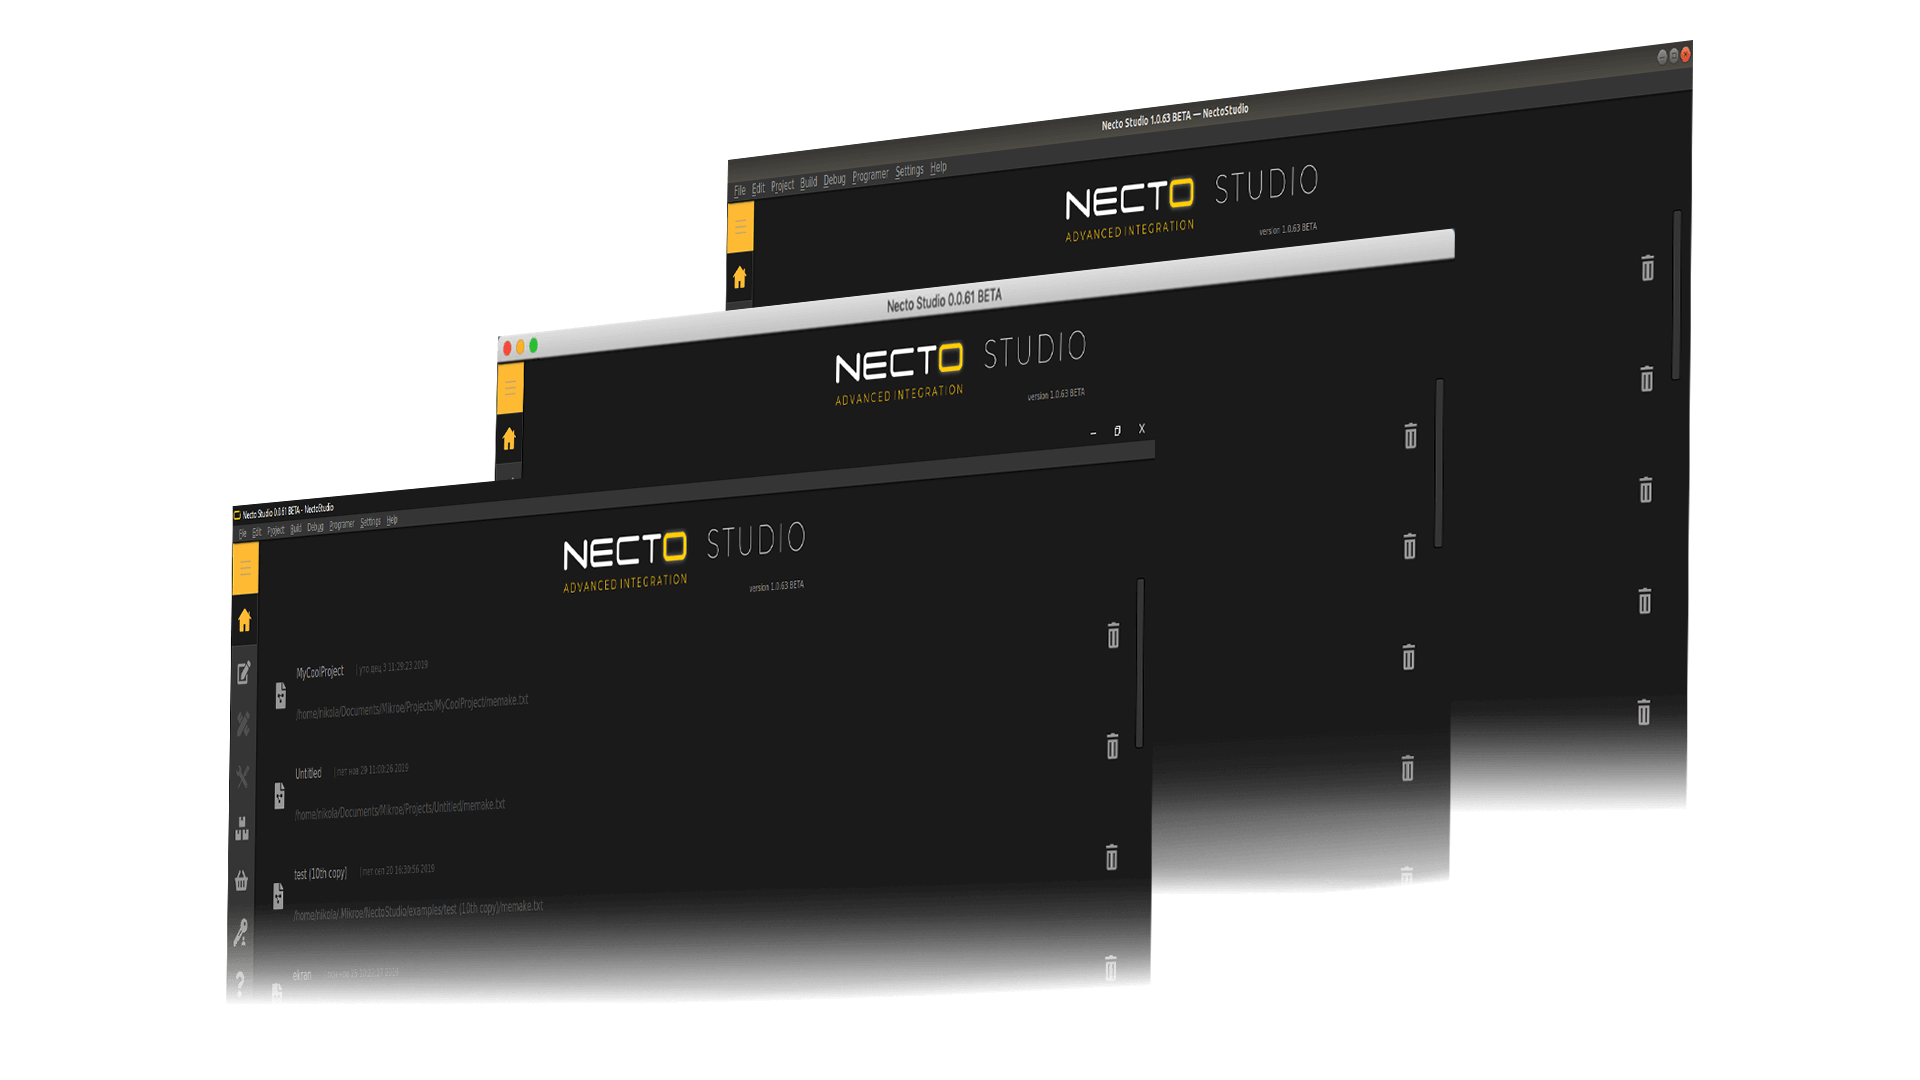 necto studio cross platform mac